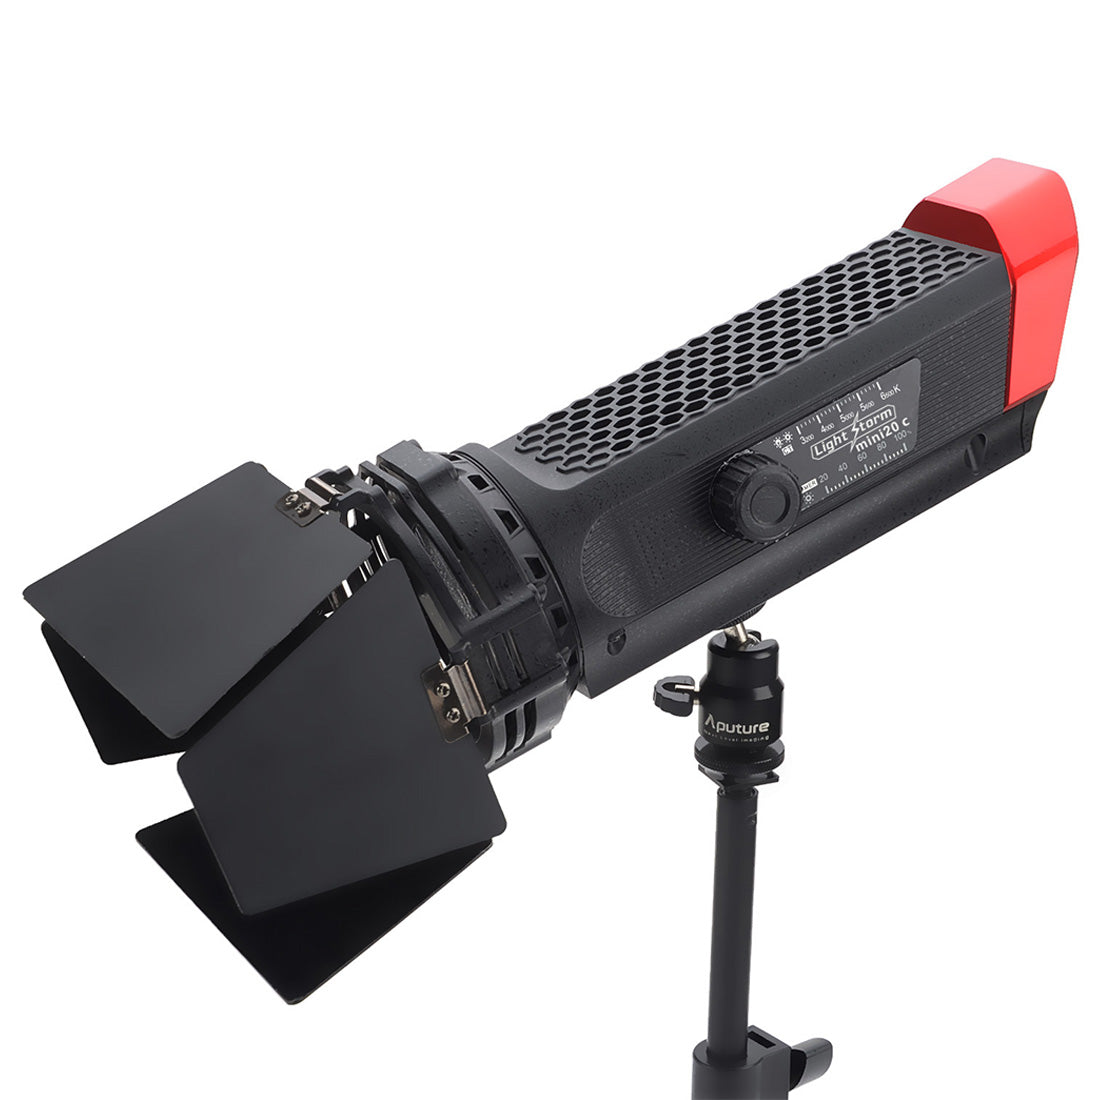 Aputure LS-mini20C Light Storm High Color Rendition TLCI 97 3200-6500K Beam Angle Adjustable COB LED Studio Video Light